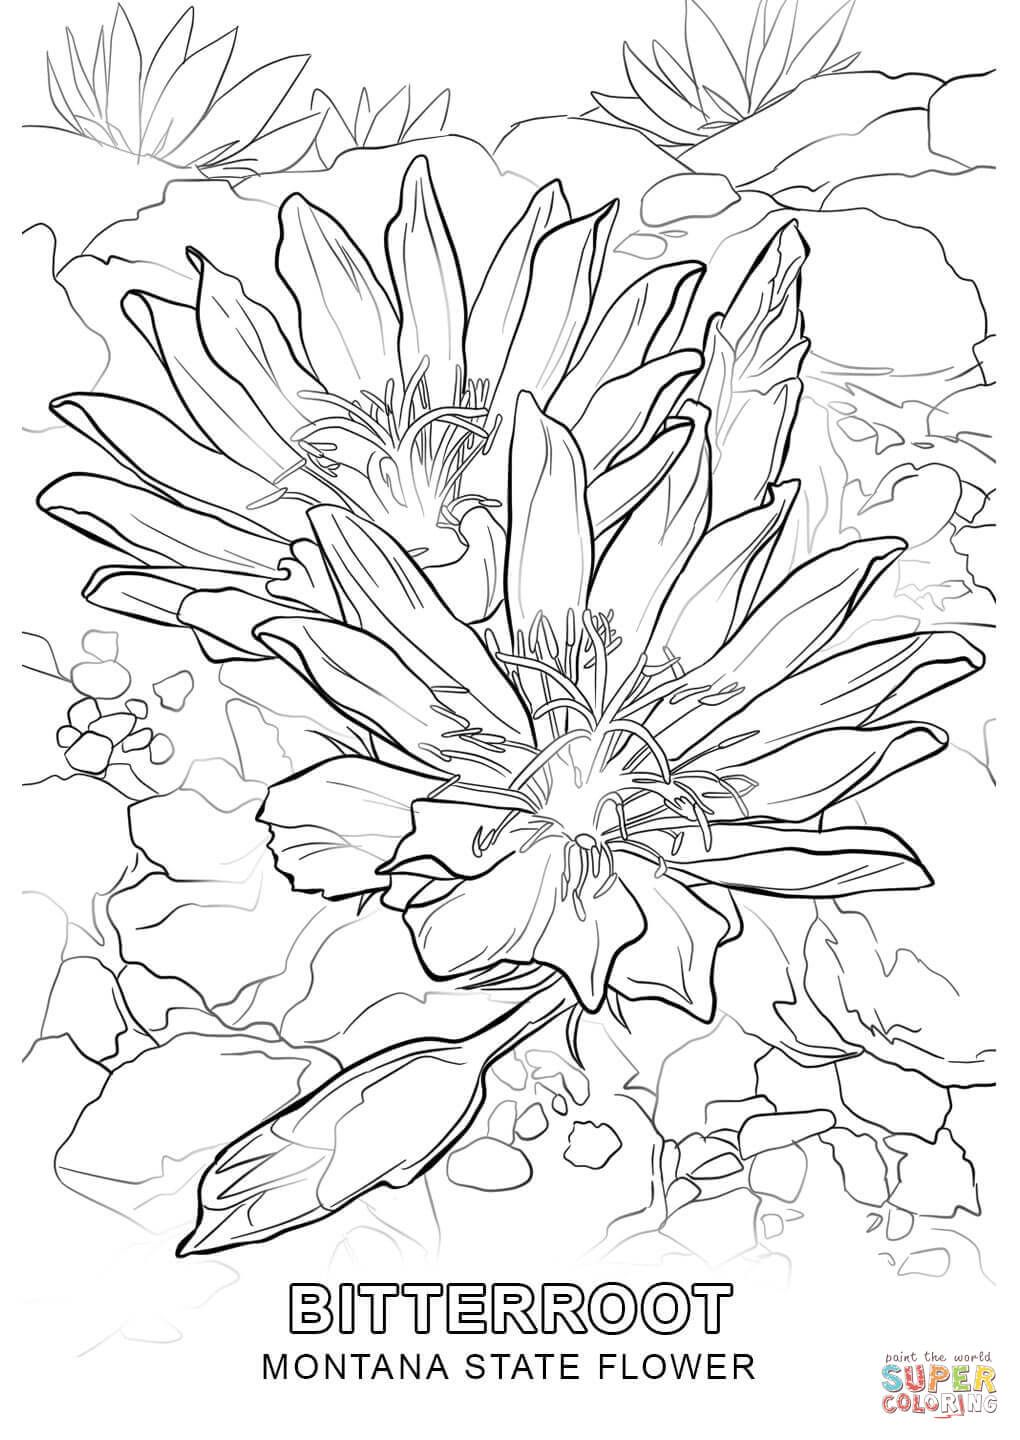 Montana State Flower Coloring Page Free Printable Coloring Pages Coloring Pages Flower Coloring Pages Flower Sketches